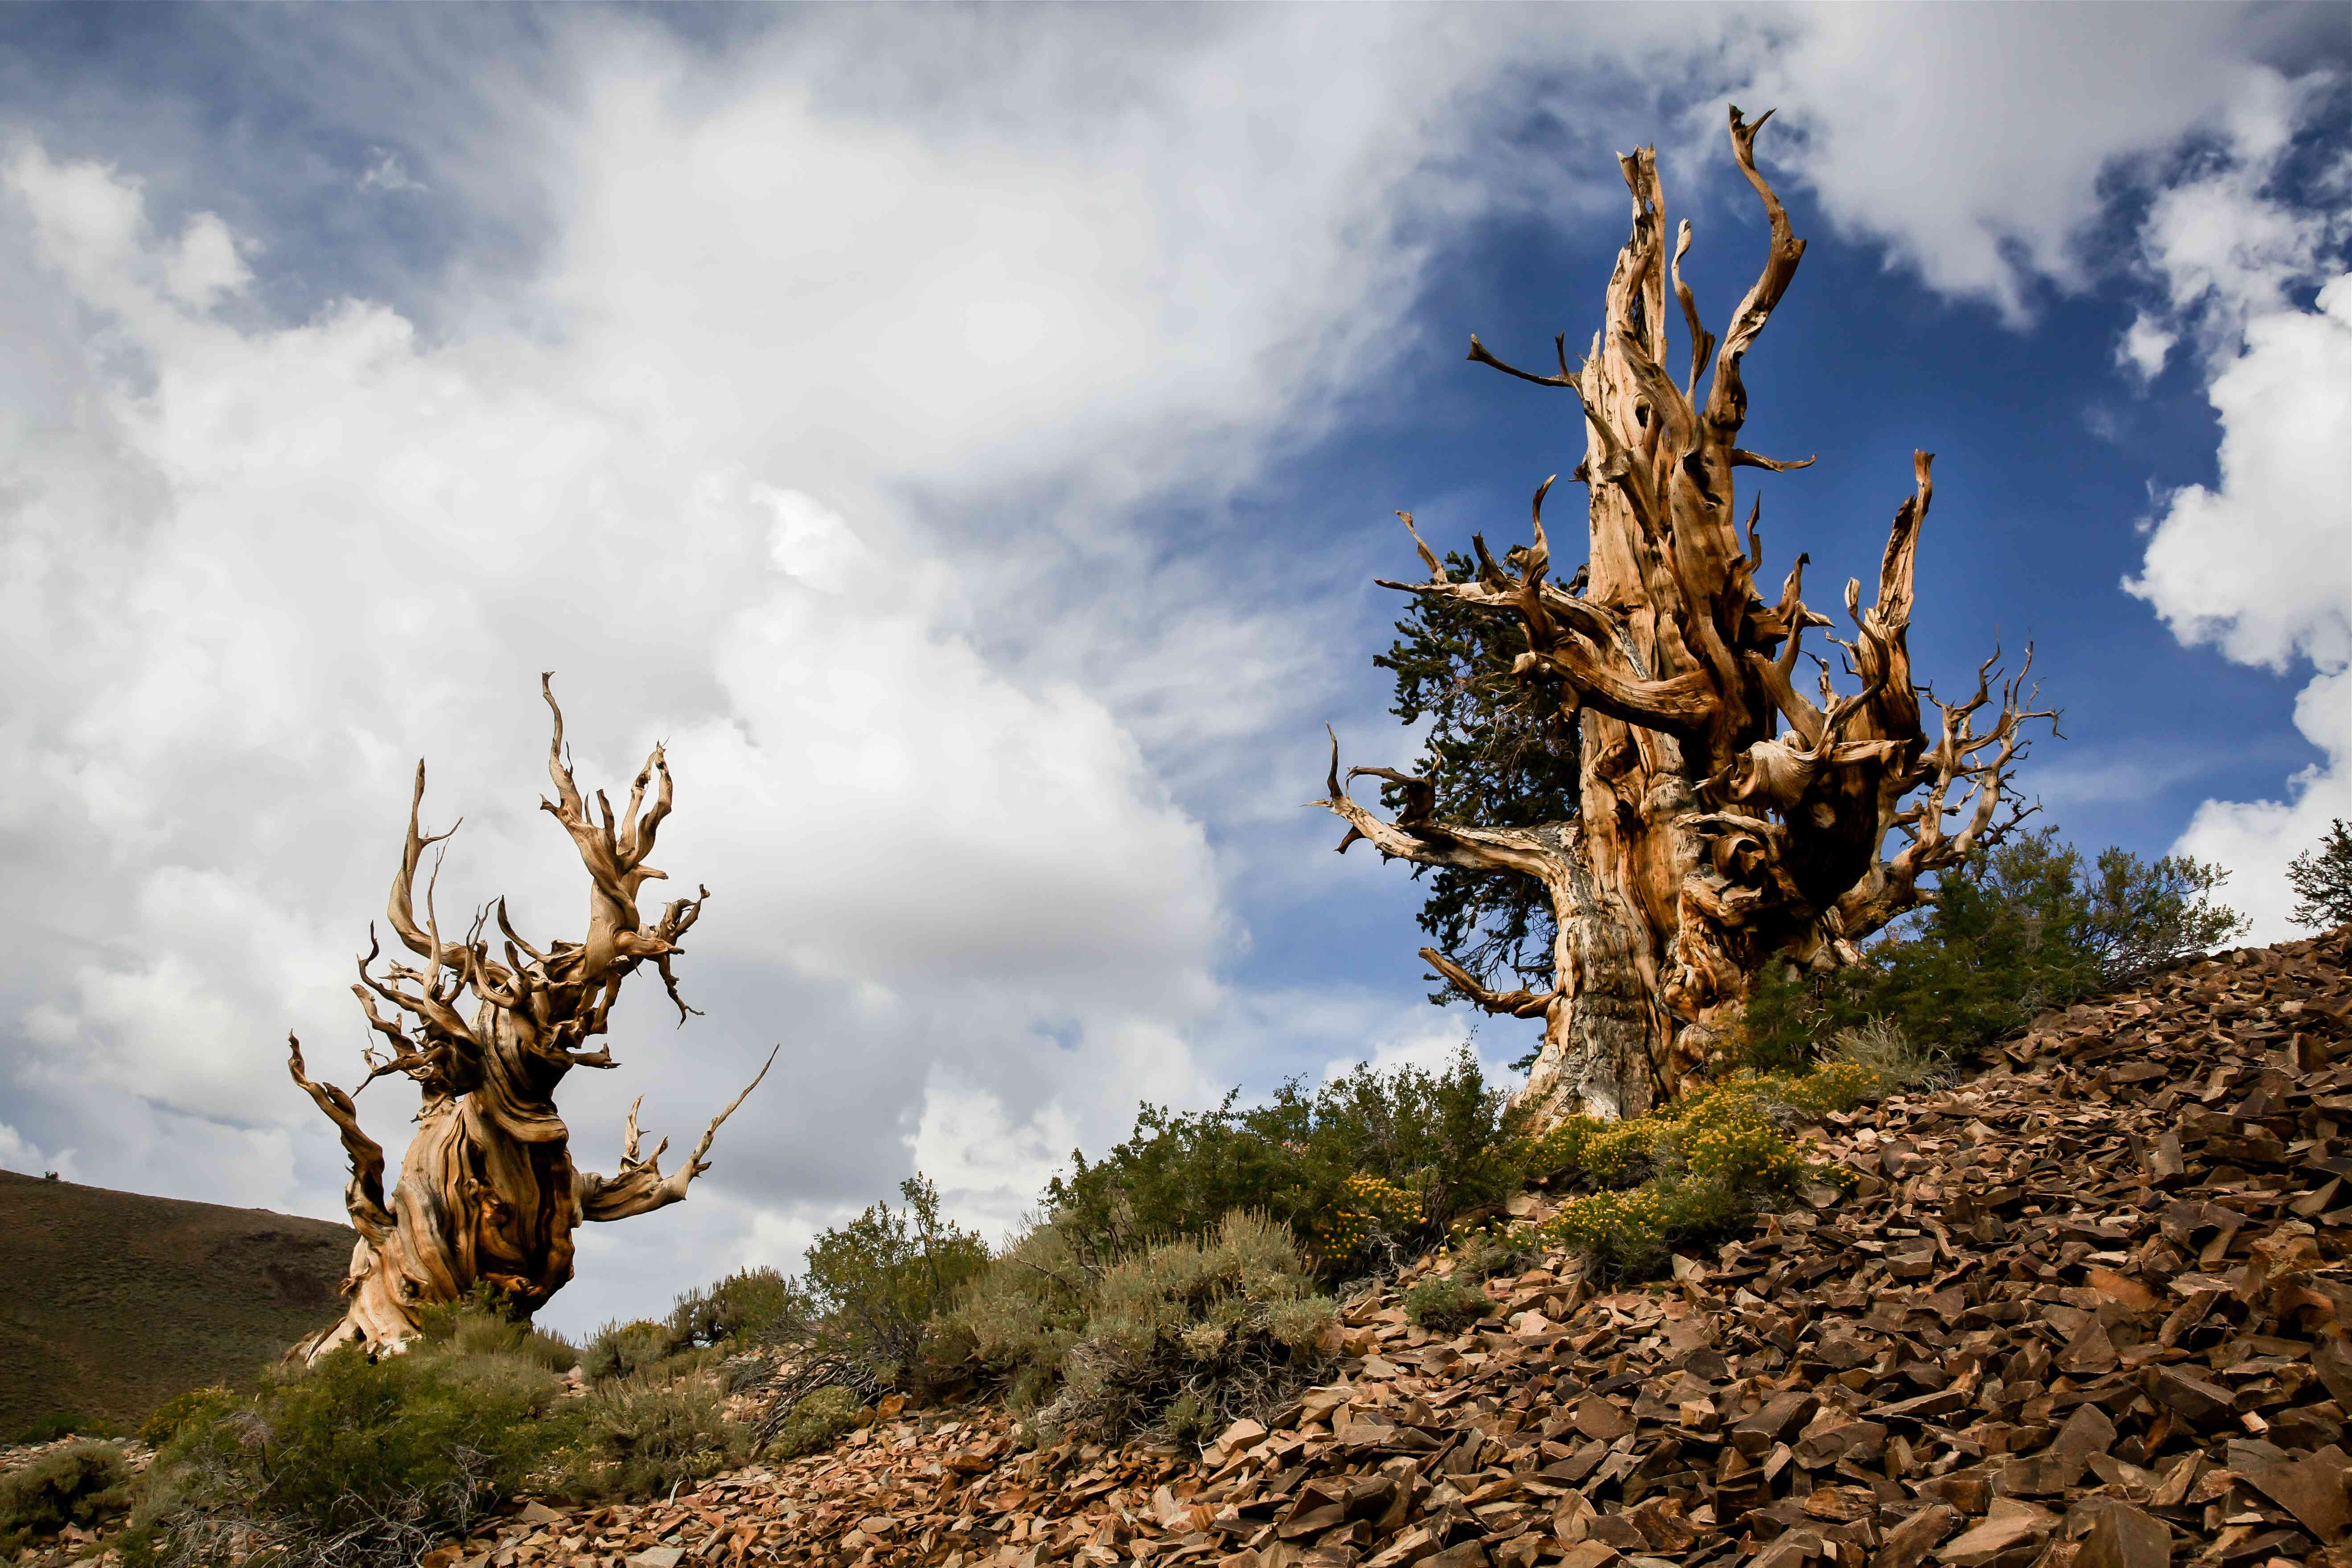 Two ancient bristlecone pine trees on a rocky hillside